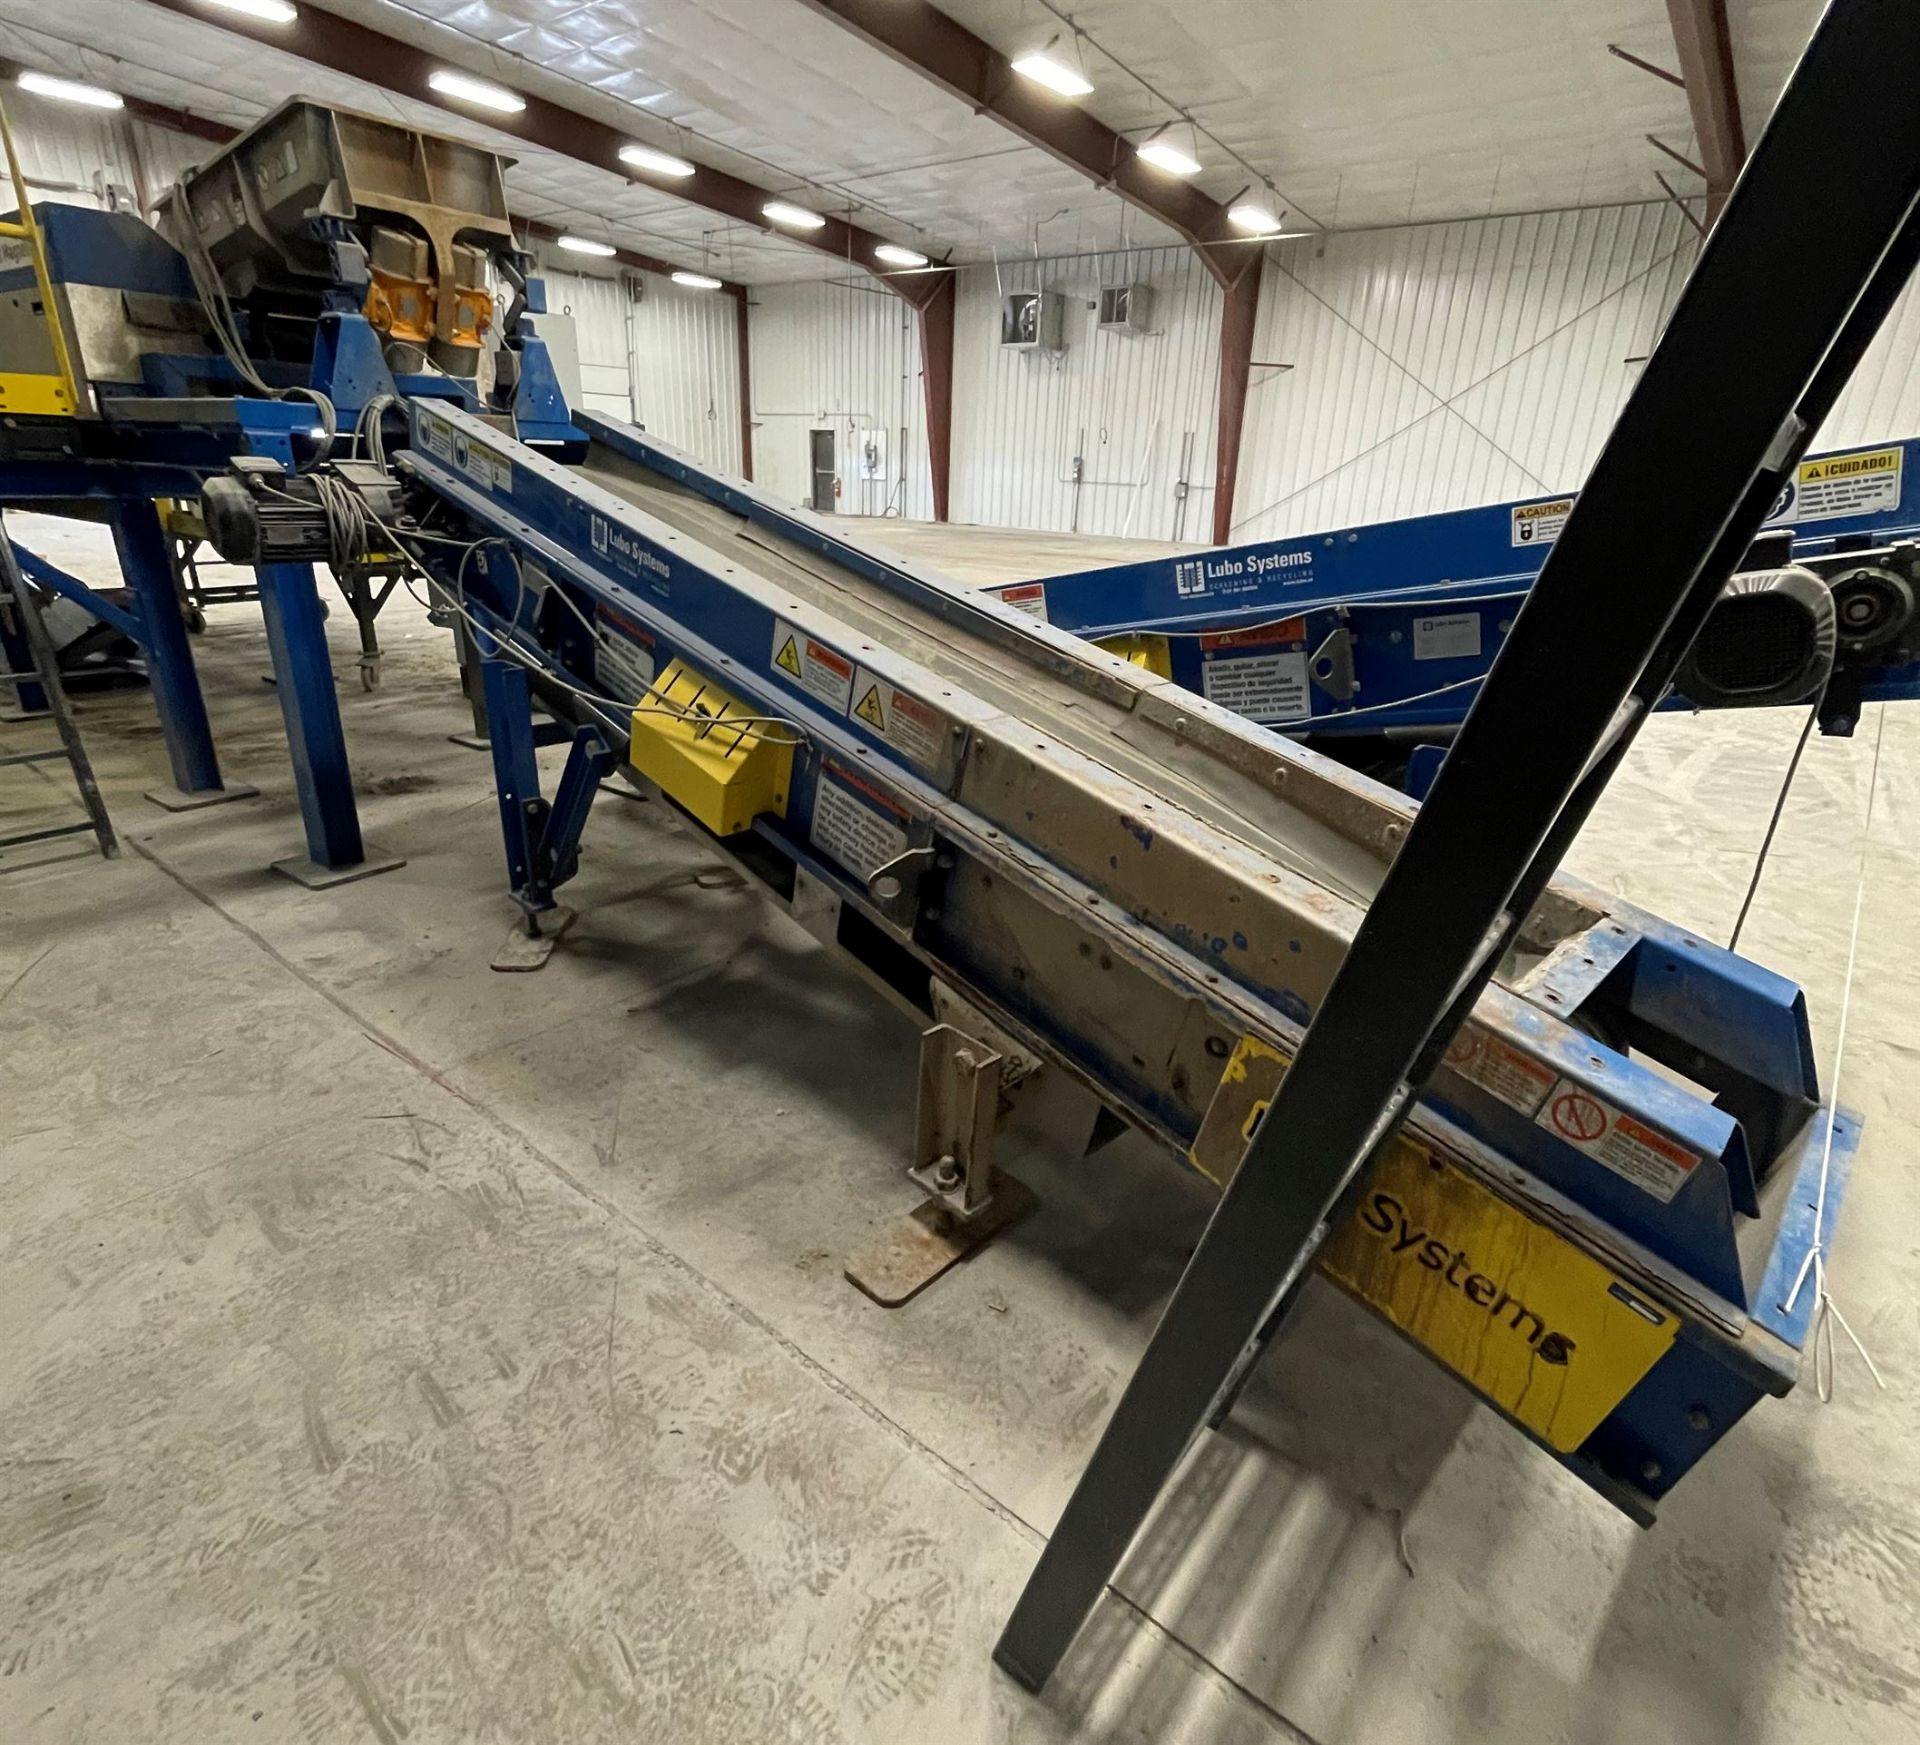 2015 LUBO SYSTEMS TBL 600x3500 Inclined Belt Conveyor, s/n 800108-0280, 600mm x 3500mm, SEW 3.7 kW - Image 2 of 5